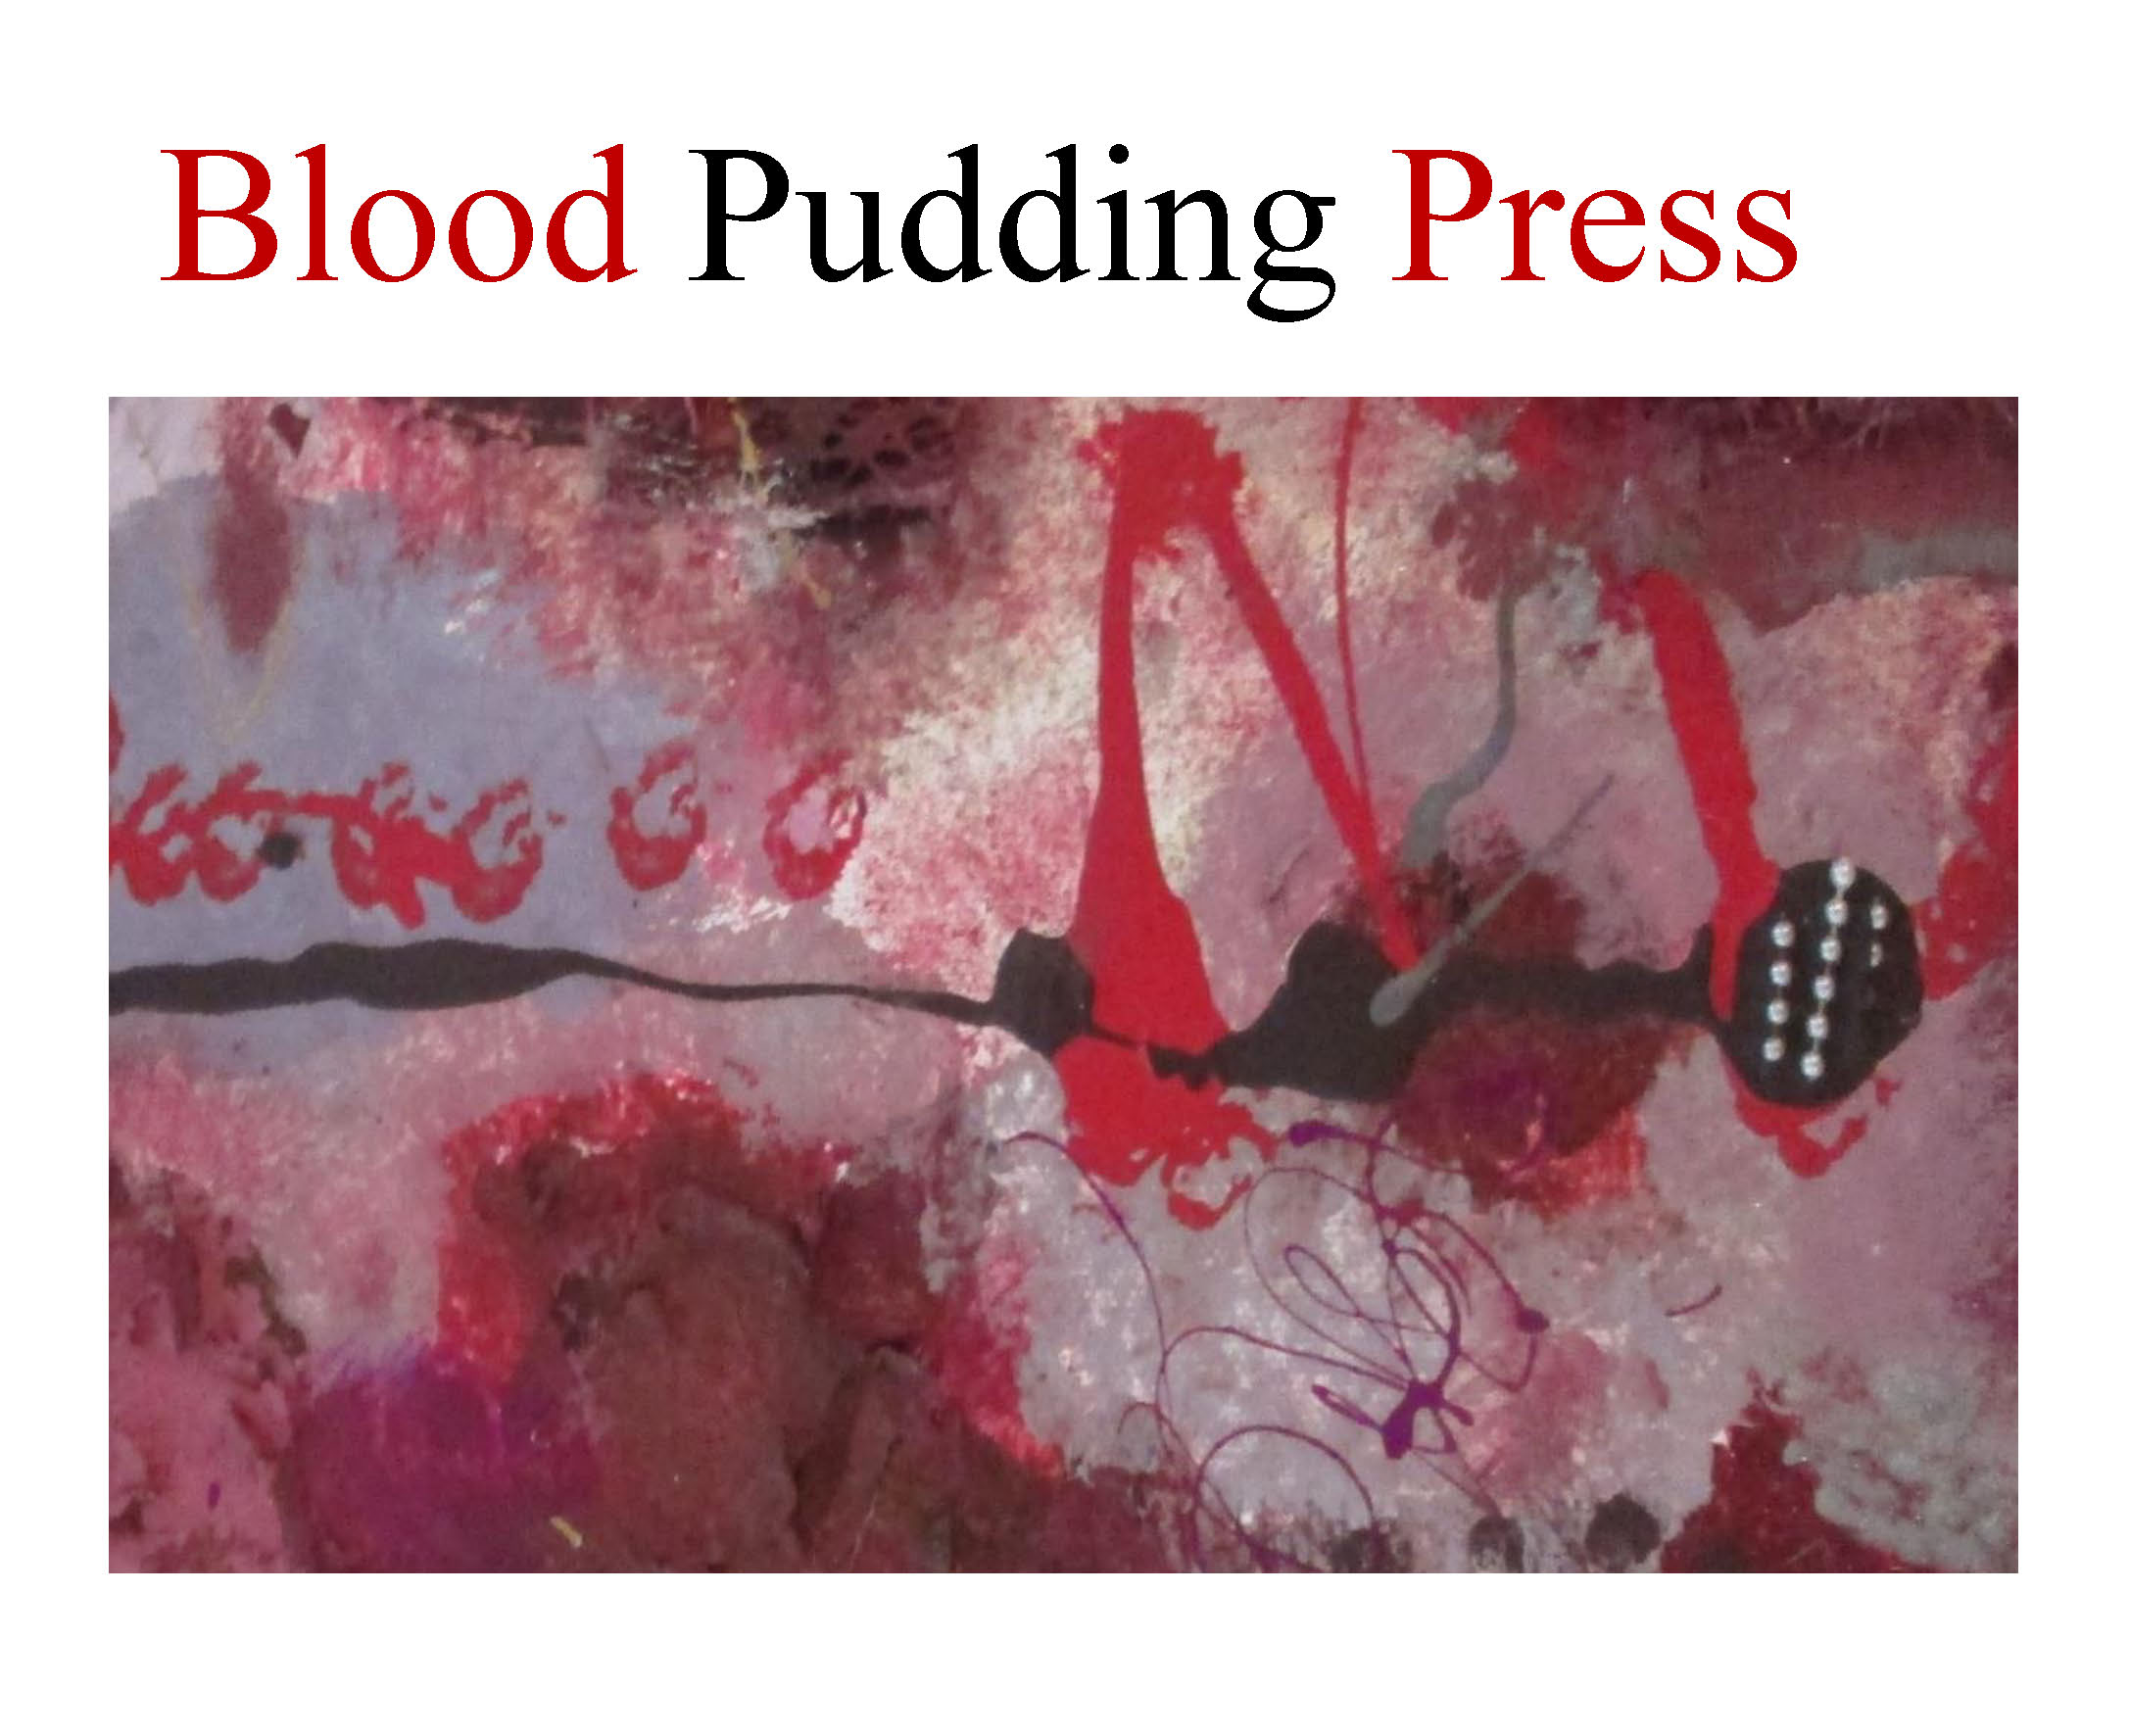 Blood Pudding Press